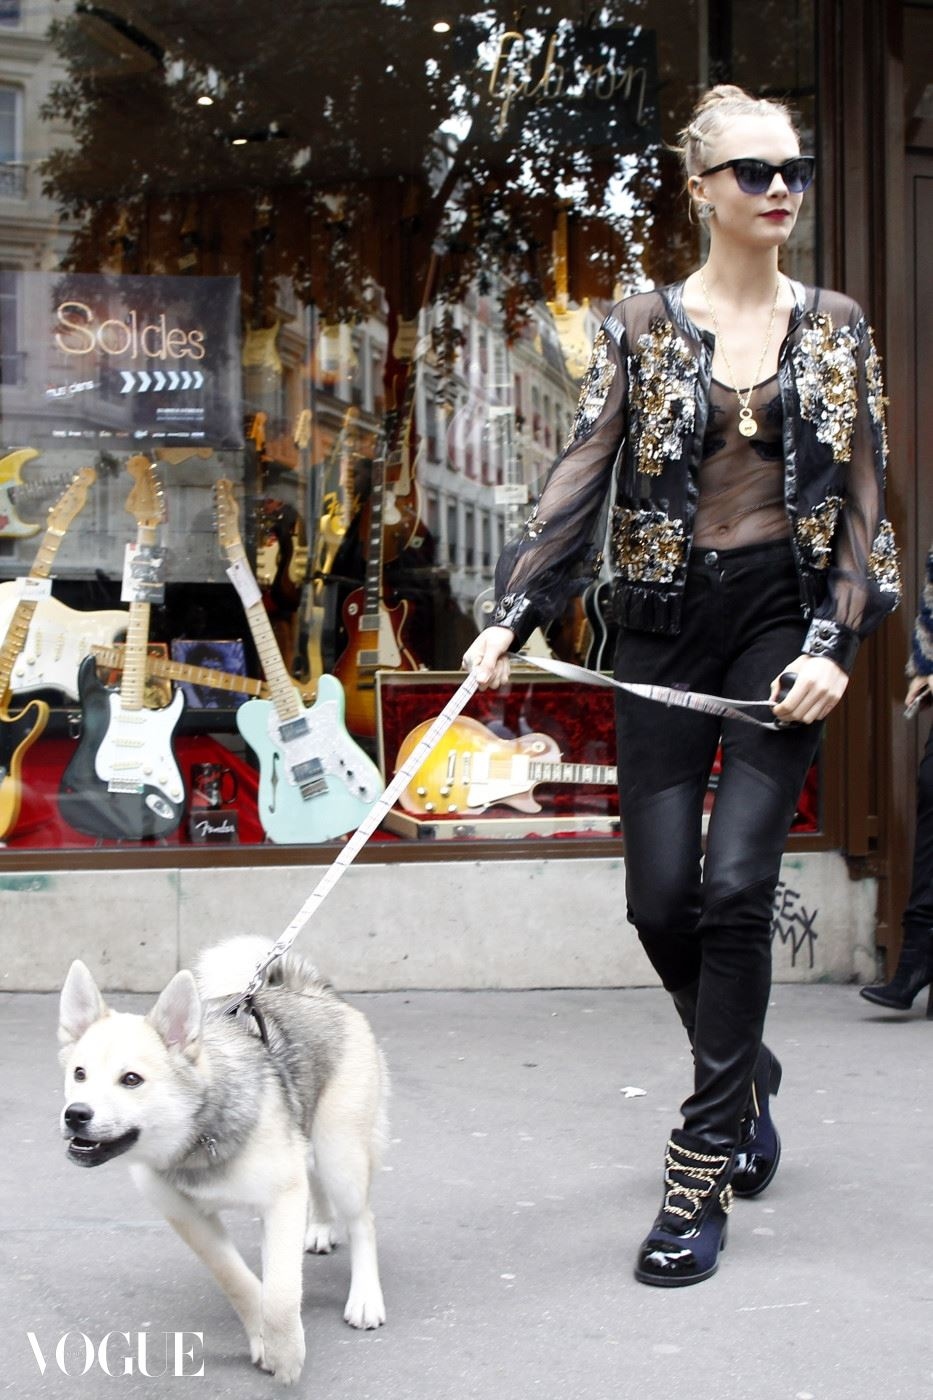 Cara Delevingne and her dog Leo do some shopping at the guitar legend store in Paris Pictured: Cara Delevingne Ref: SPL1214895  260116   Picture by: Splash News Splash News and Pictures Los Angeles:310-821-2666 New York:212-619-2666 London:870-934-2666 photodesk@splashnews.com